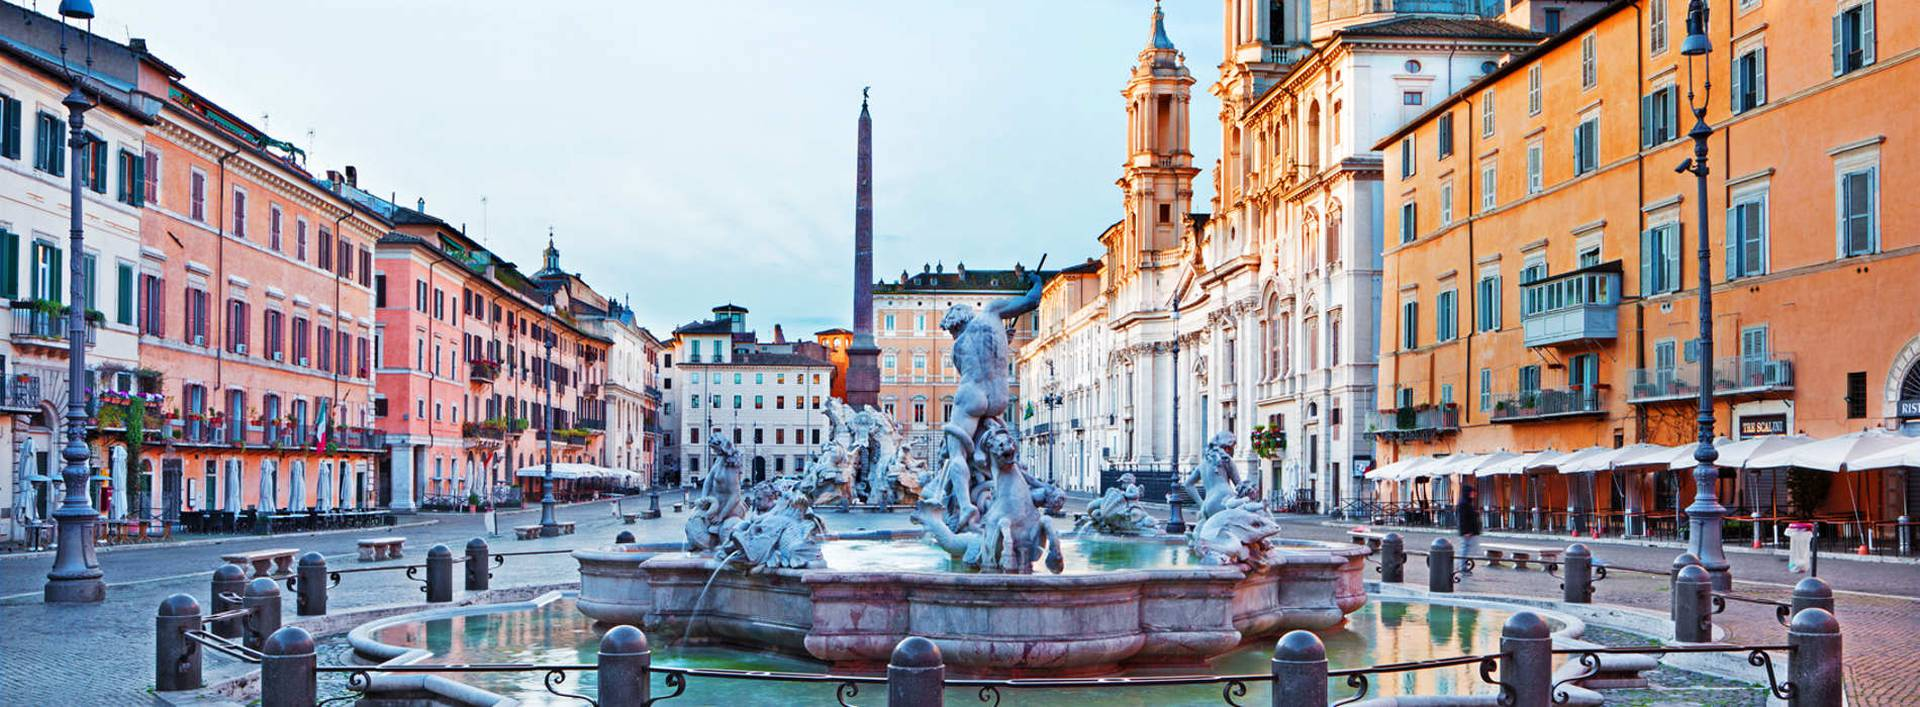 Enjoy Rome with Leonardi Hotels Leonardi Hotels